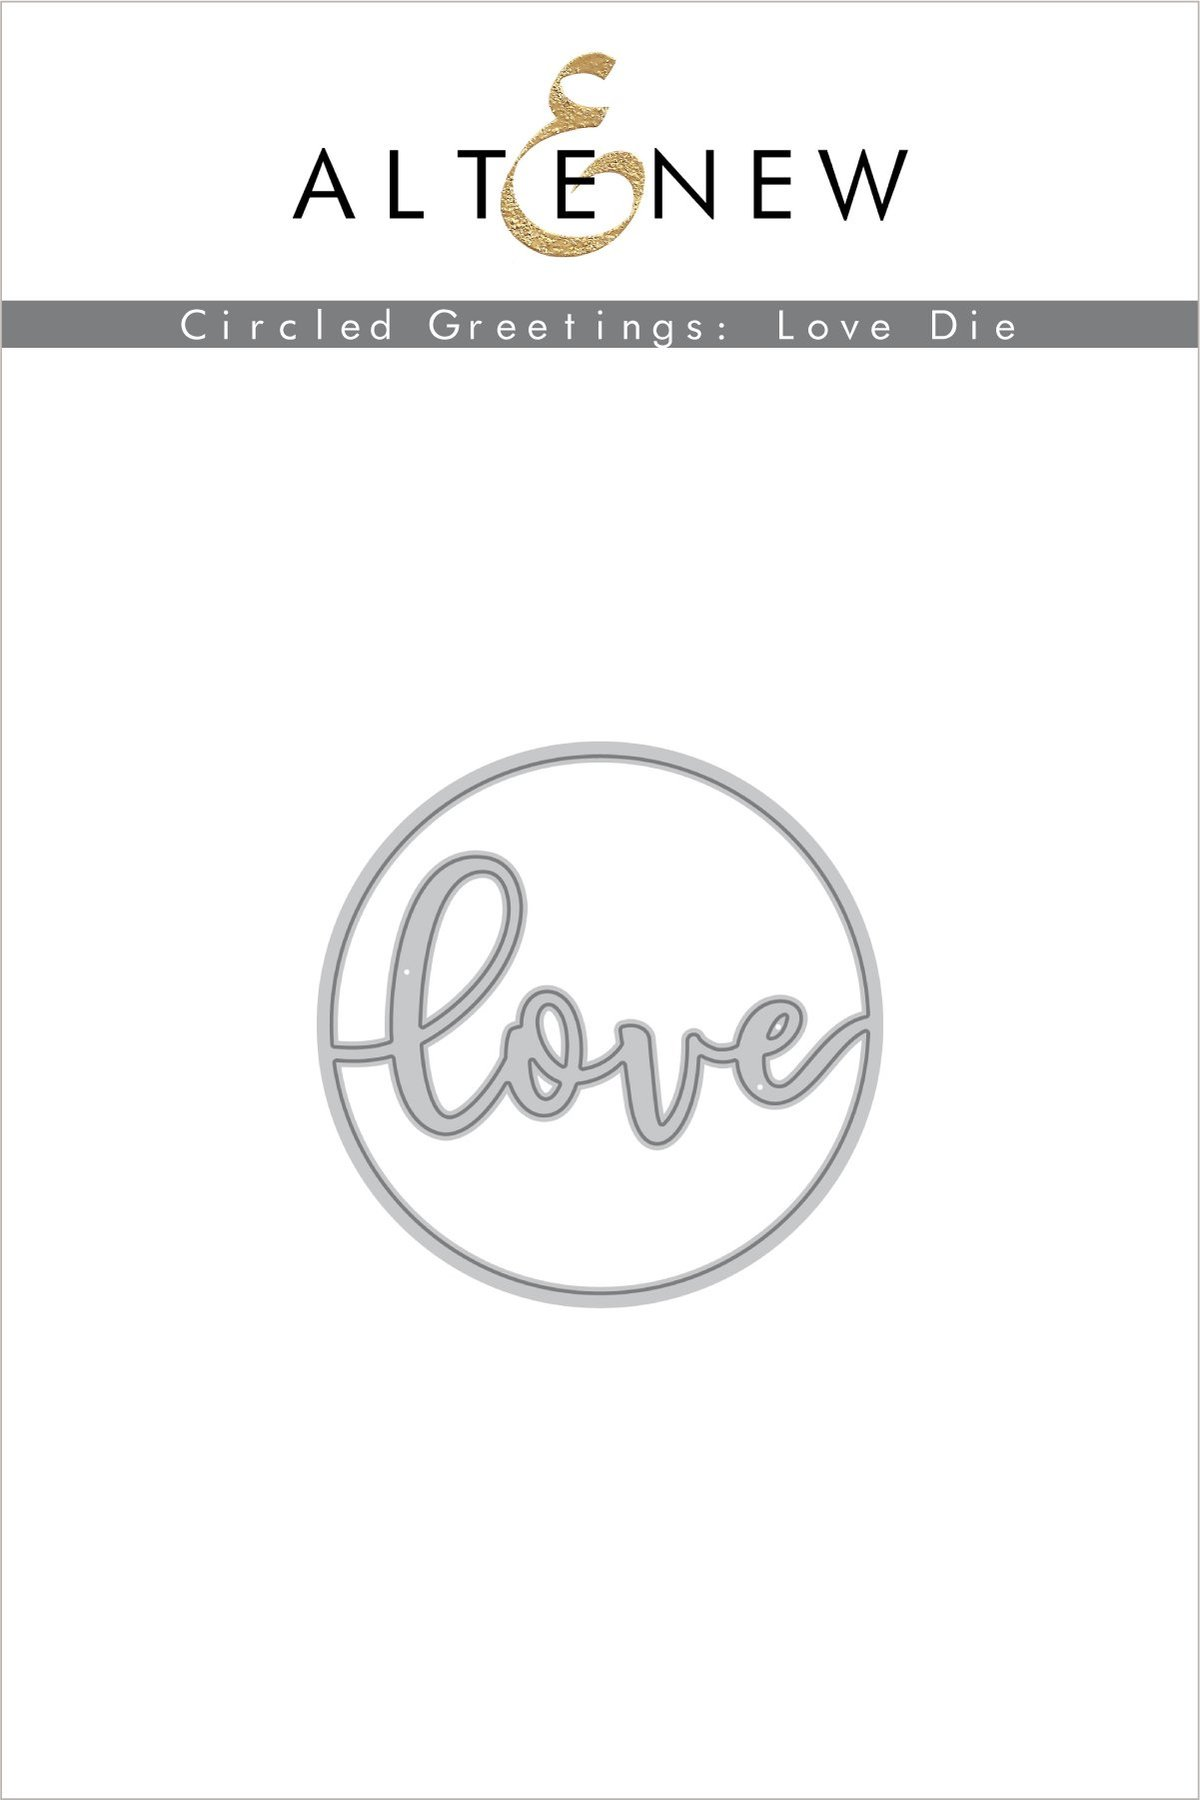 *NEW* - Altenew - Circled Greetings: Love Die